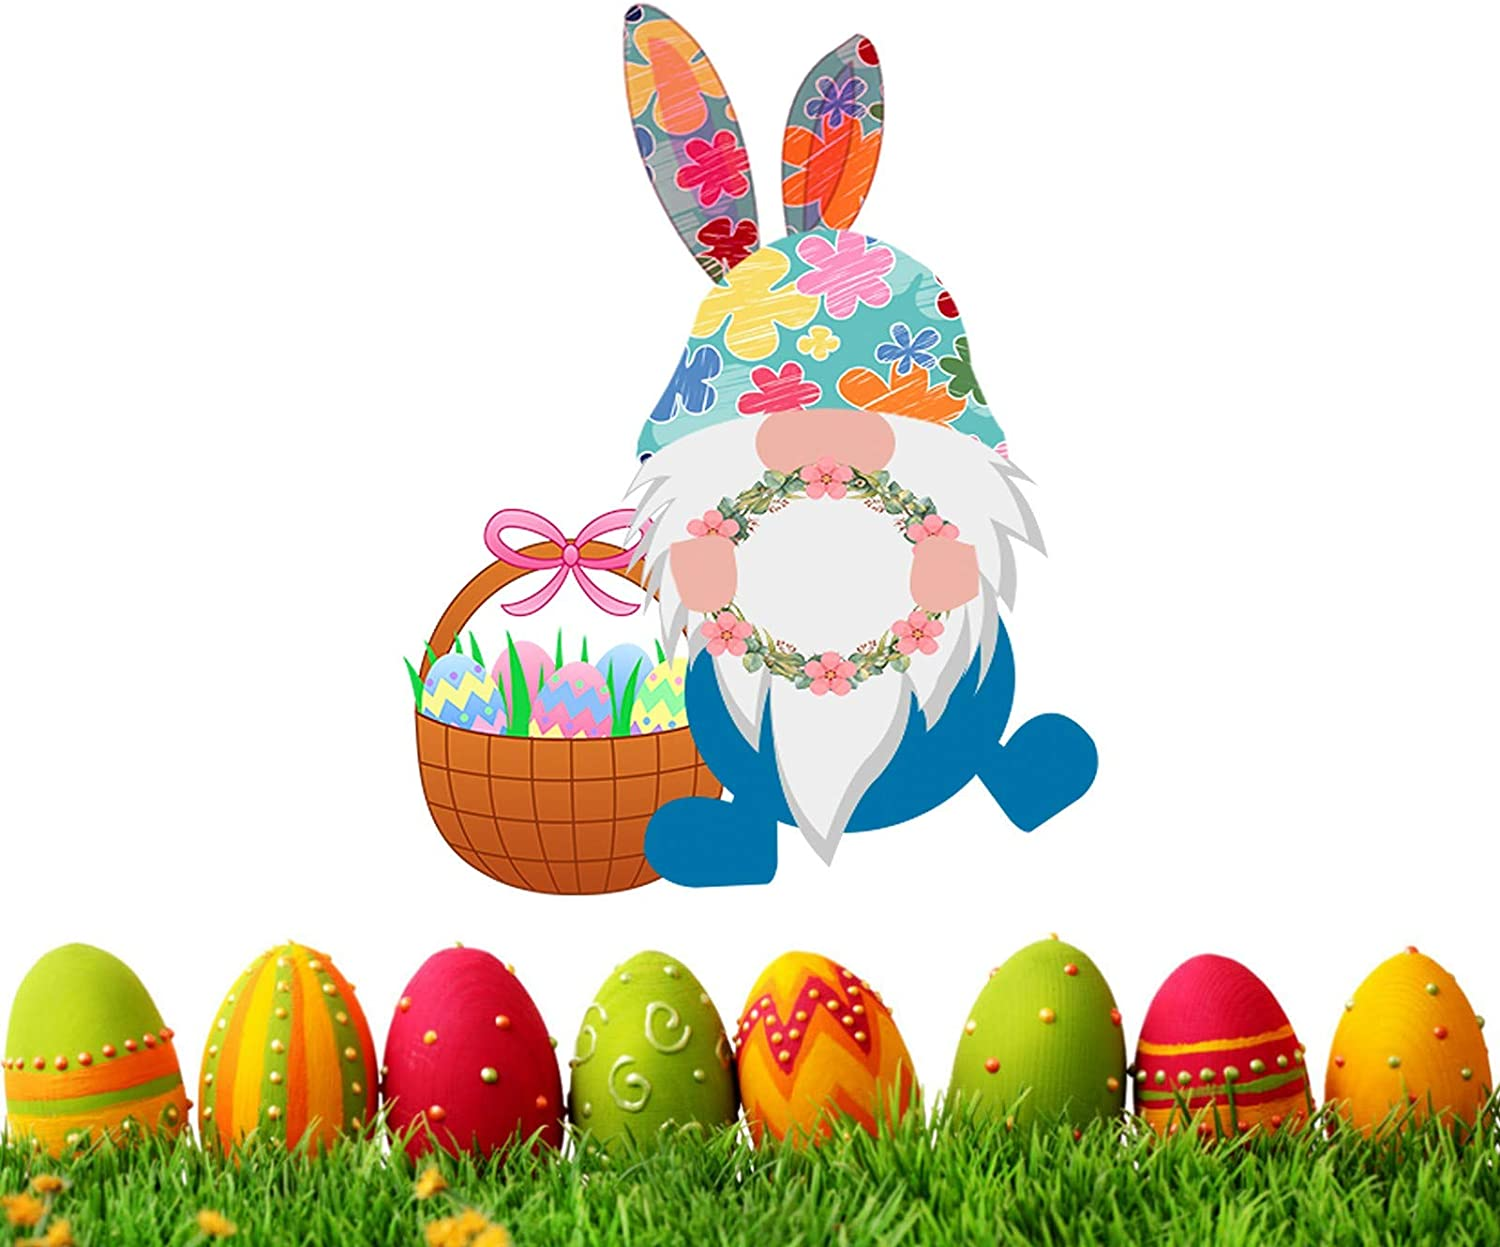 Big Easter Sacramento Mall Window Clings Decals Gnome Decor East 5 popular Stickers Bunny